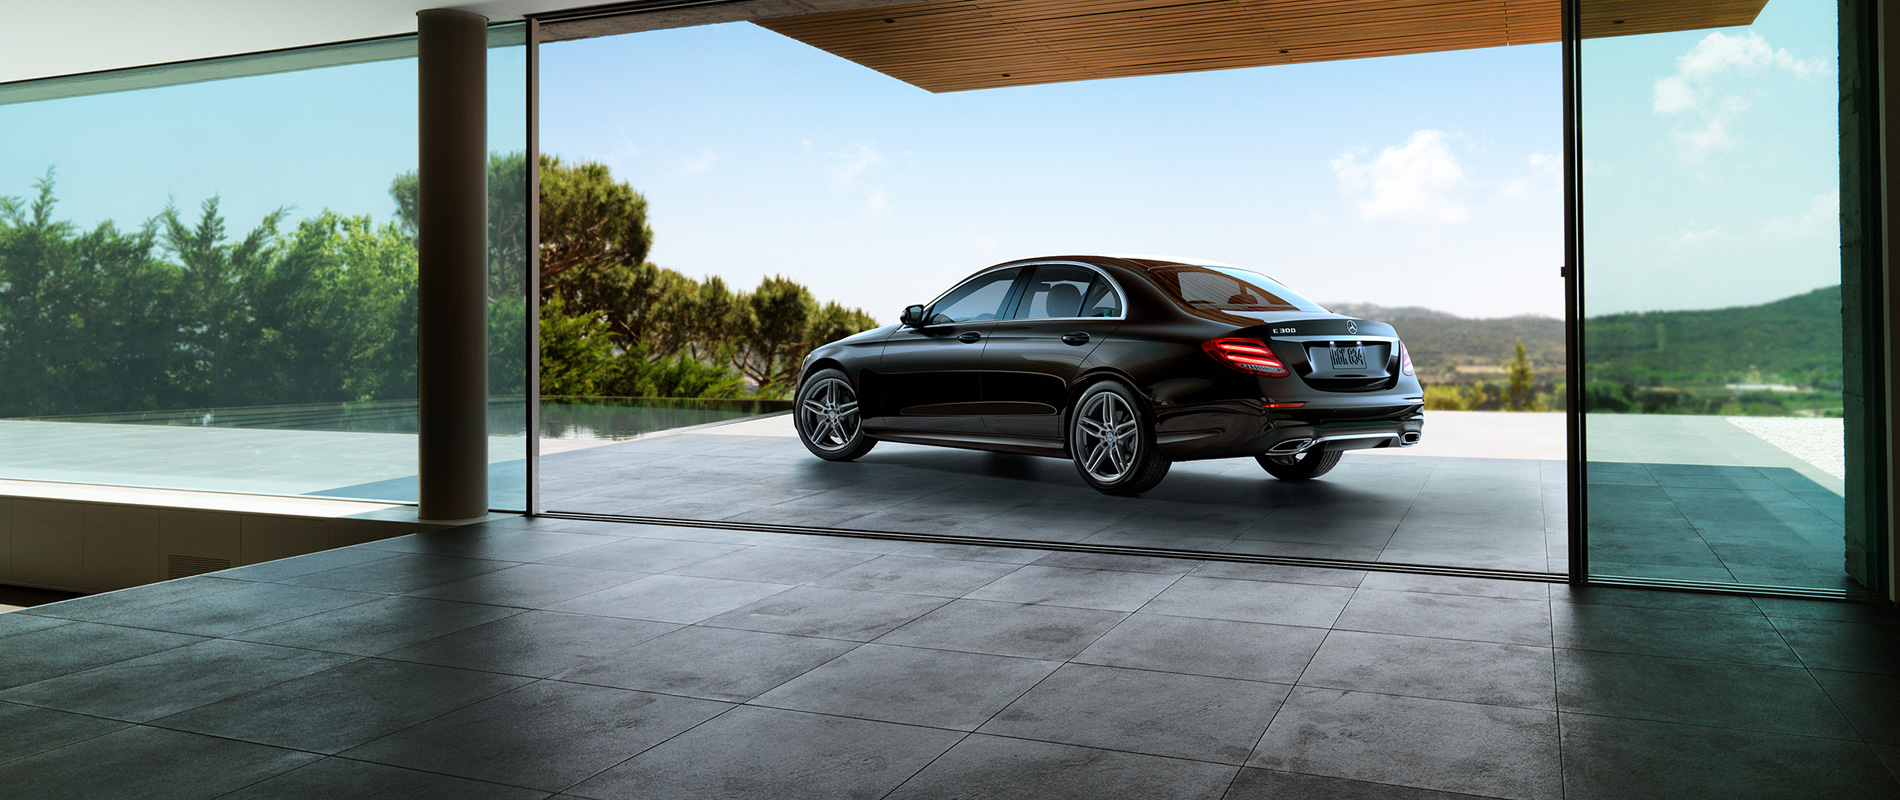 Explore The Techy Cabin Of The 2018 Mercedes Benz E 300 Sedan